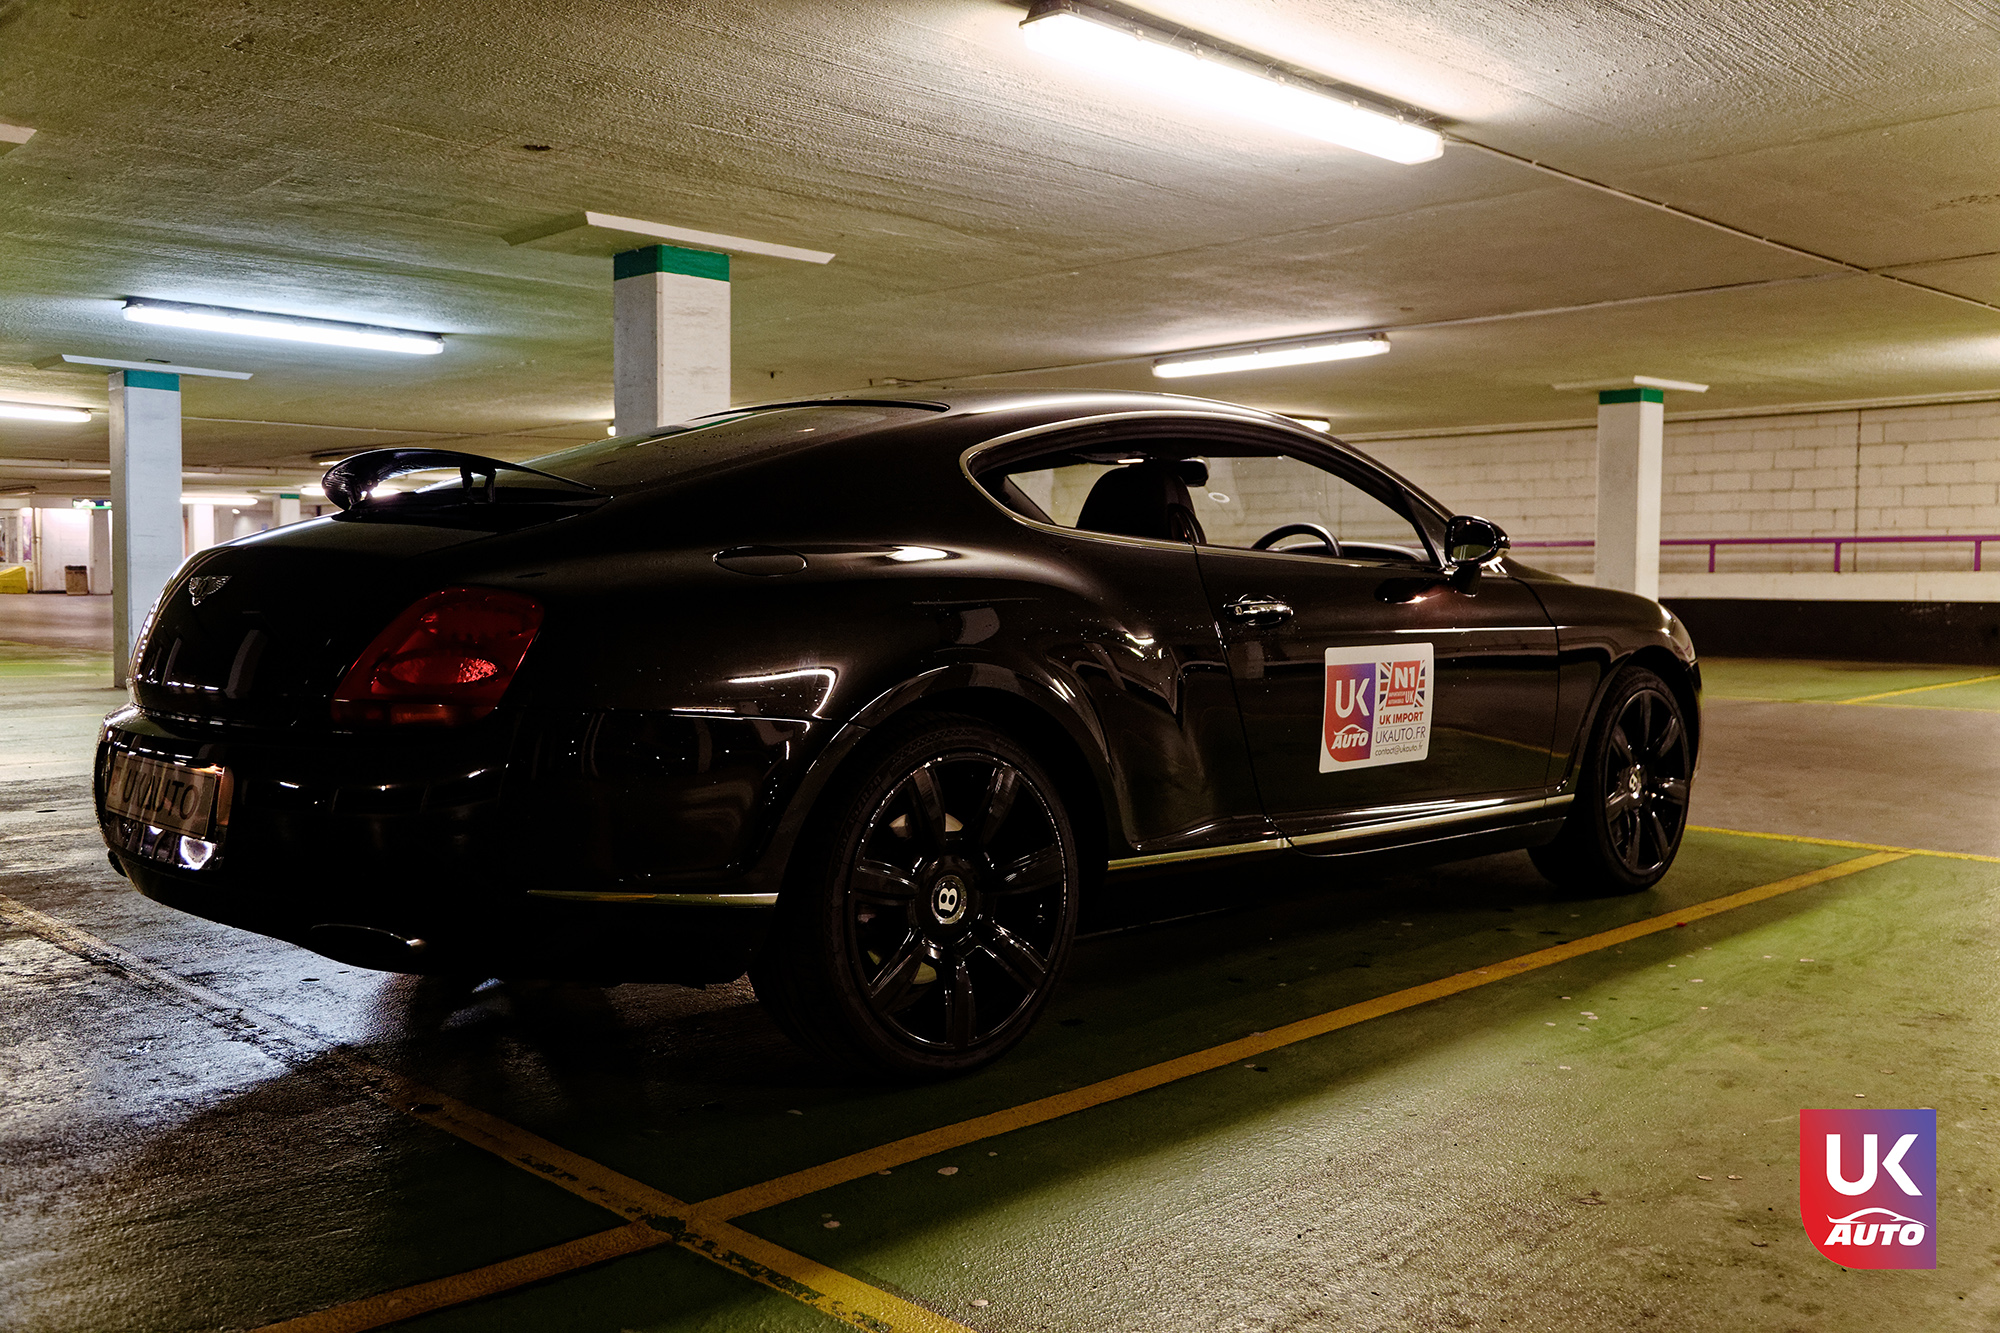 Importation Bentley Continental GT Speed edition W12 6.0l Bi turbo par UKAUTO RHD IMPORT 610 Chevaux Monstre du bitume importation directe dangleterre par UKAUTO IMPORT 3 - Importation Bentley Continental GT Speed edition W12 6.0l Bi turbo par UKAUTO RHD IMPORT 610 hp importation directe d'angleterre